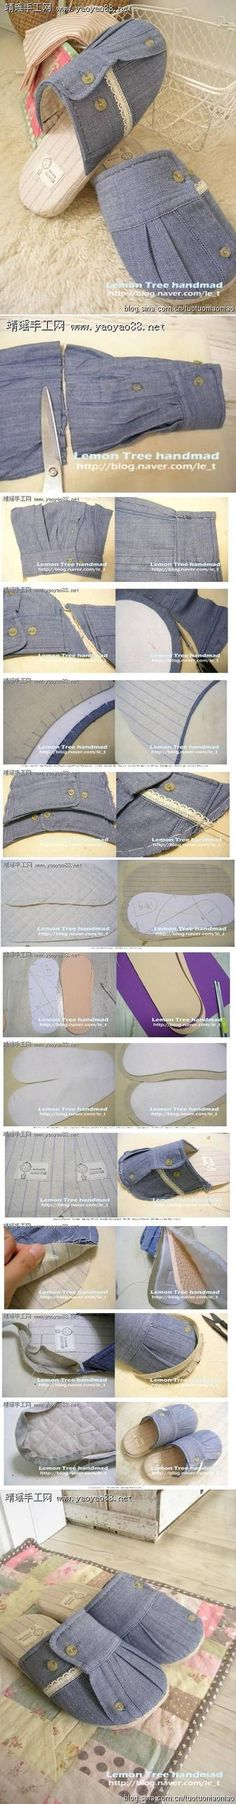 DIY Old Clothes Cuff Slipper DIY Projects / UsefulDIY.com on imgfave